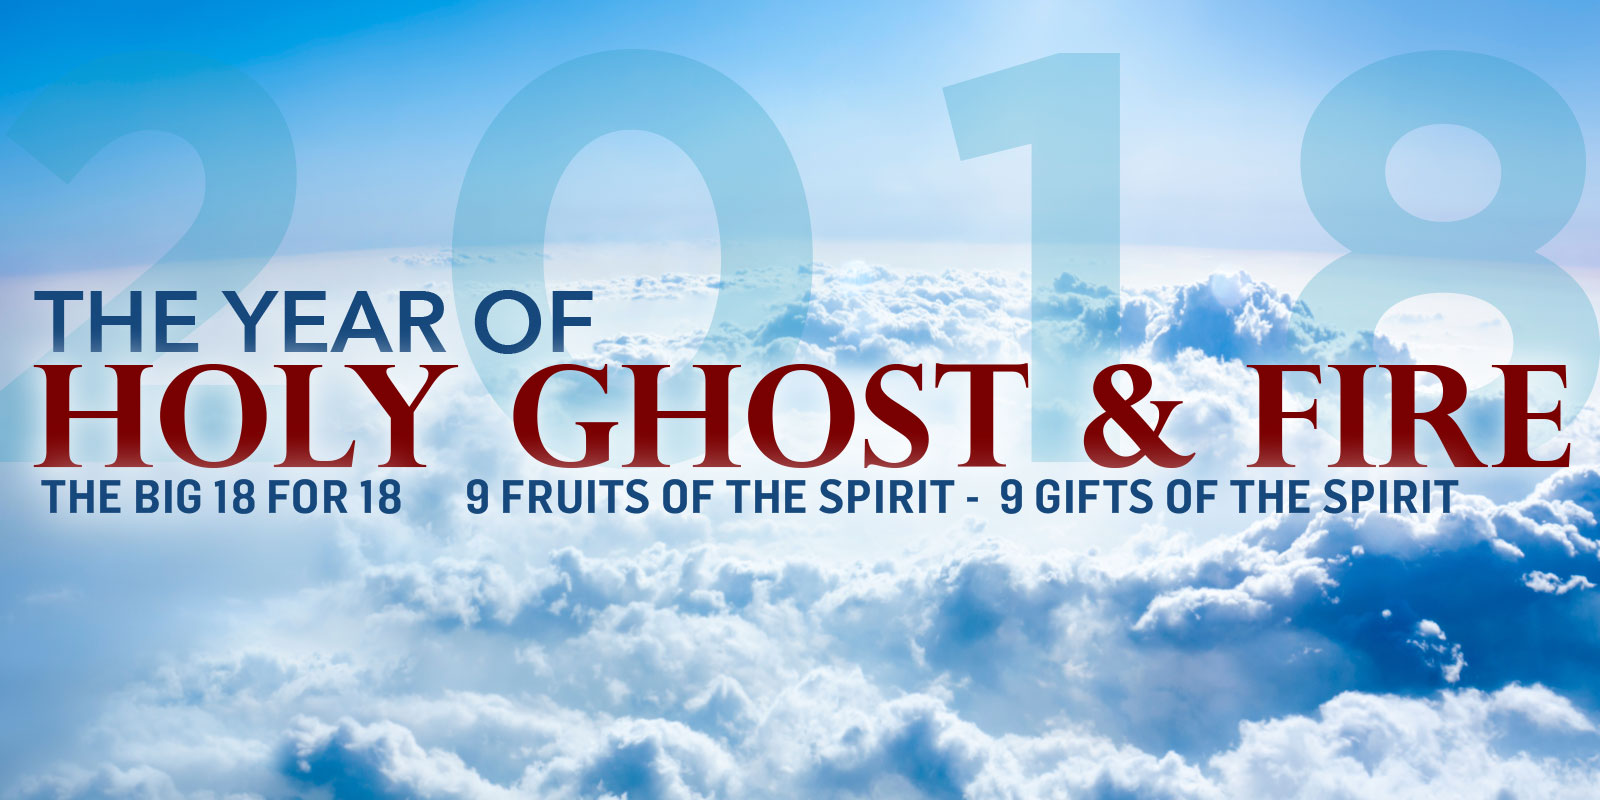 The Year of Holy Ghost Fire